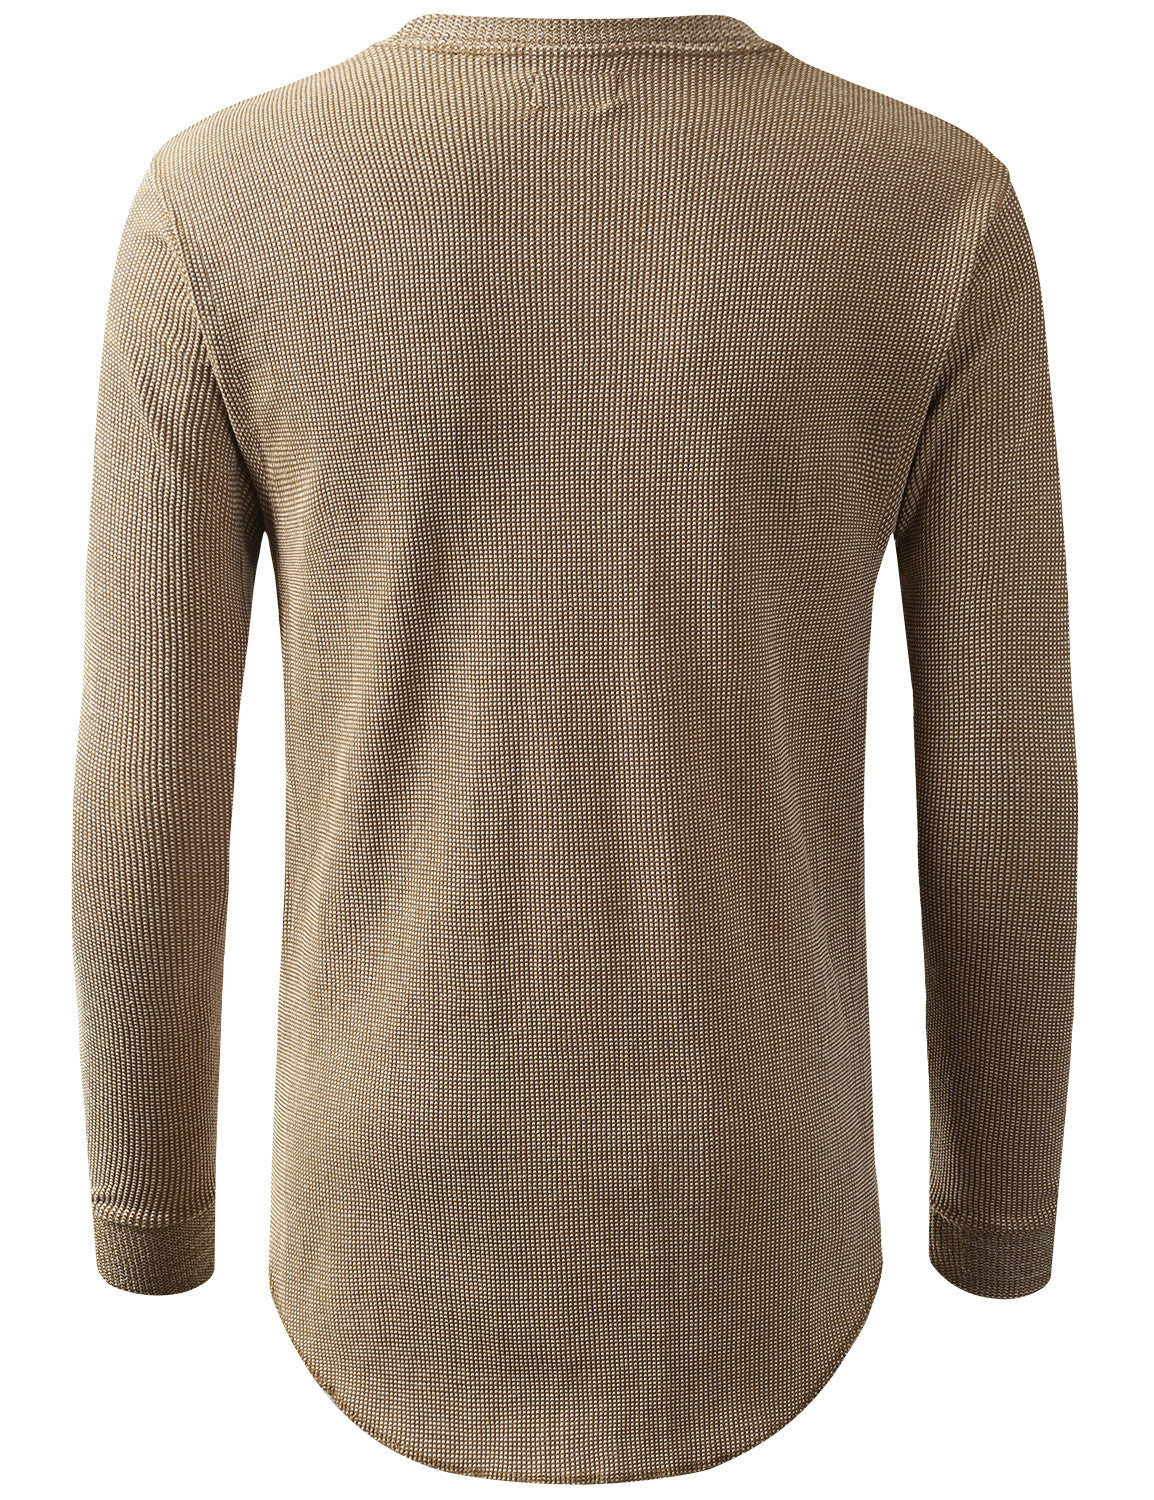 TIMBER Raw Edge Thermal Long Sleeve Tshirt - URBANCREWS